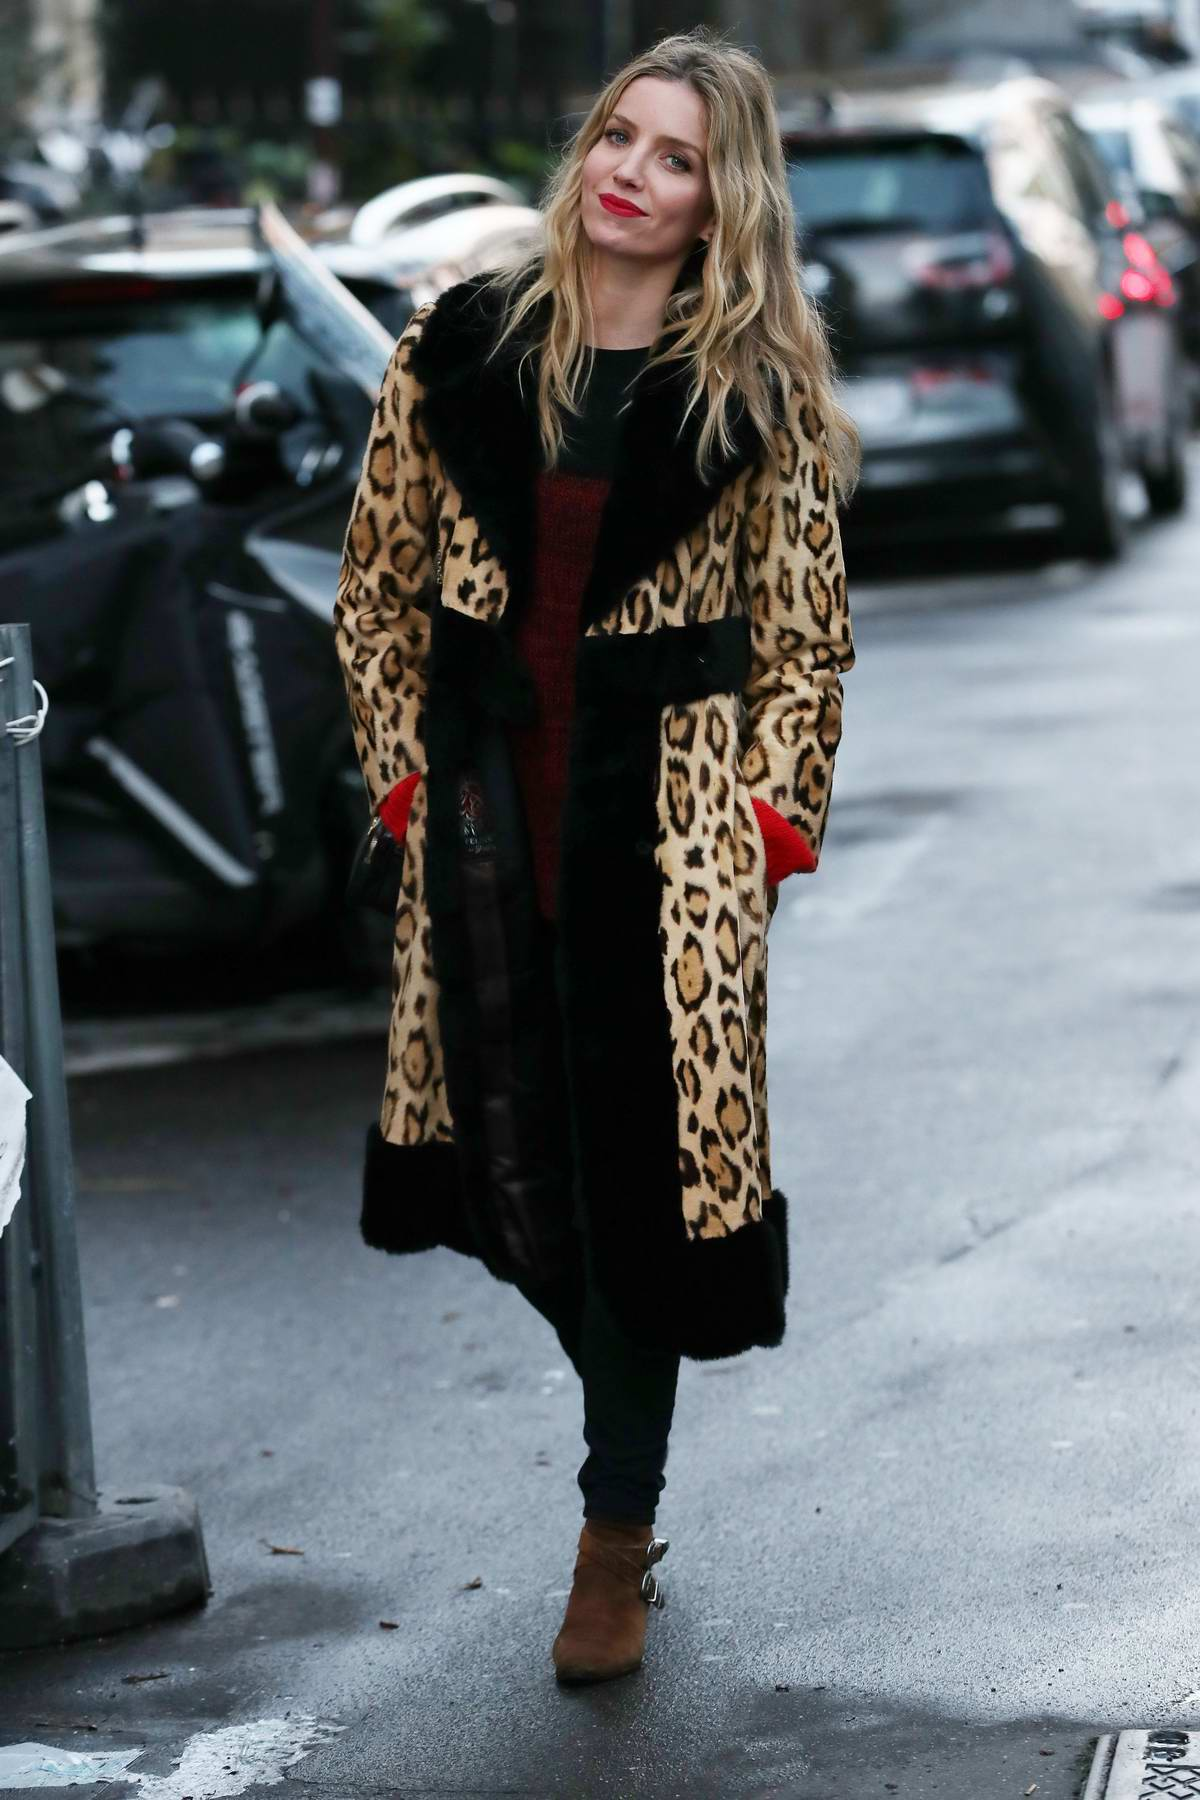 Annabelle Wallis spotted in a leopard print coat while out in Paris, France